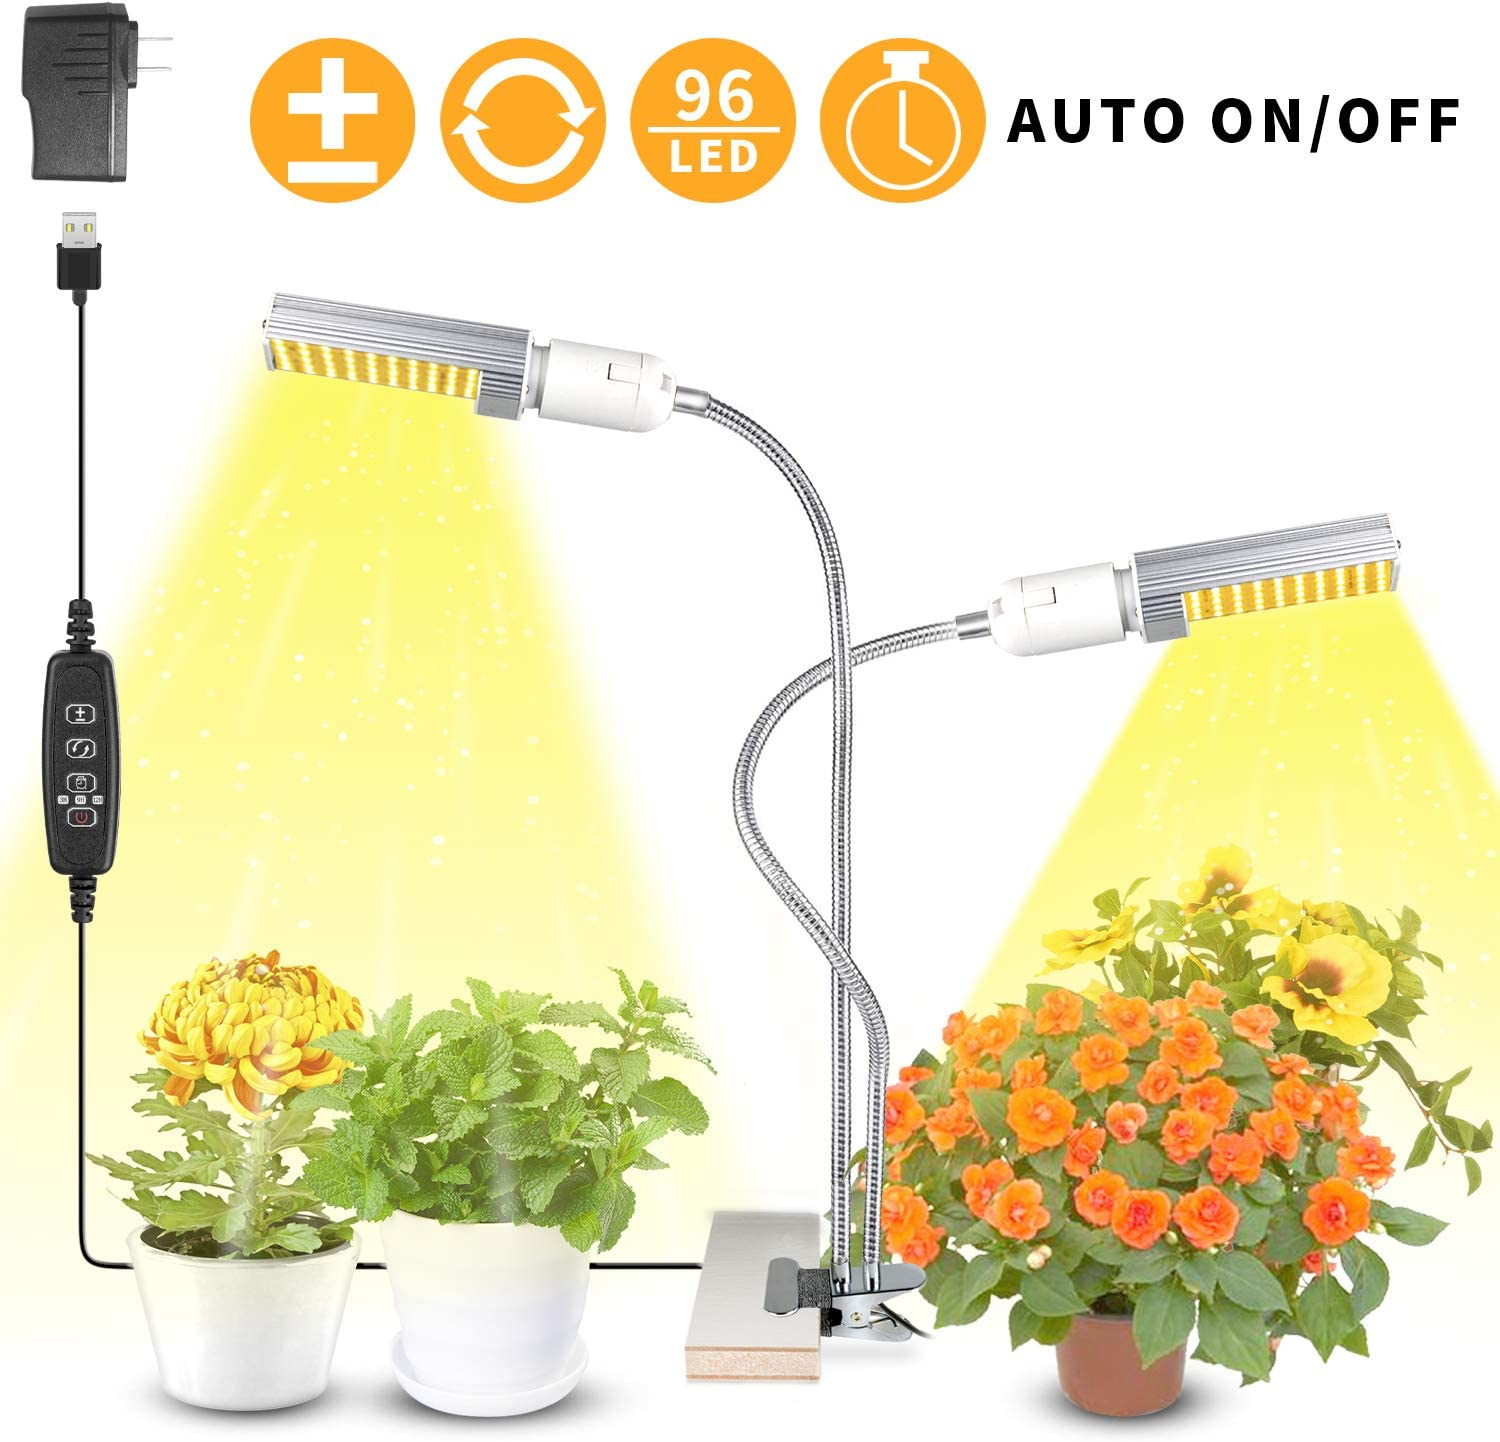 WOLEZEK Plant Light for Indoor Plants, 50W 96 LED Auto ON Off Timer Full Spectrum Grow Lamp, 3 9 12H Timing 13 Dimmable Levels for House Garden Hydroponics Succulent Growing